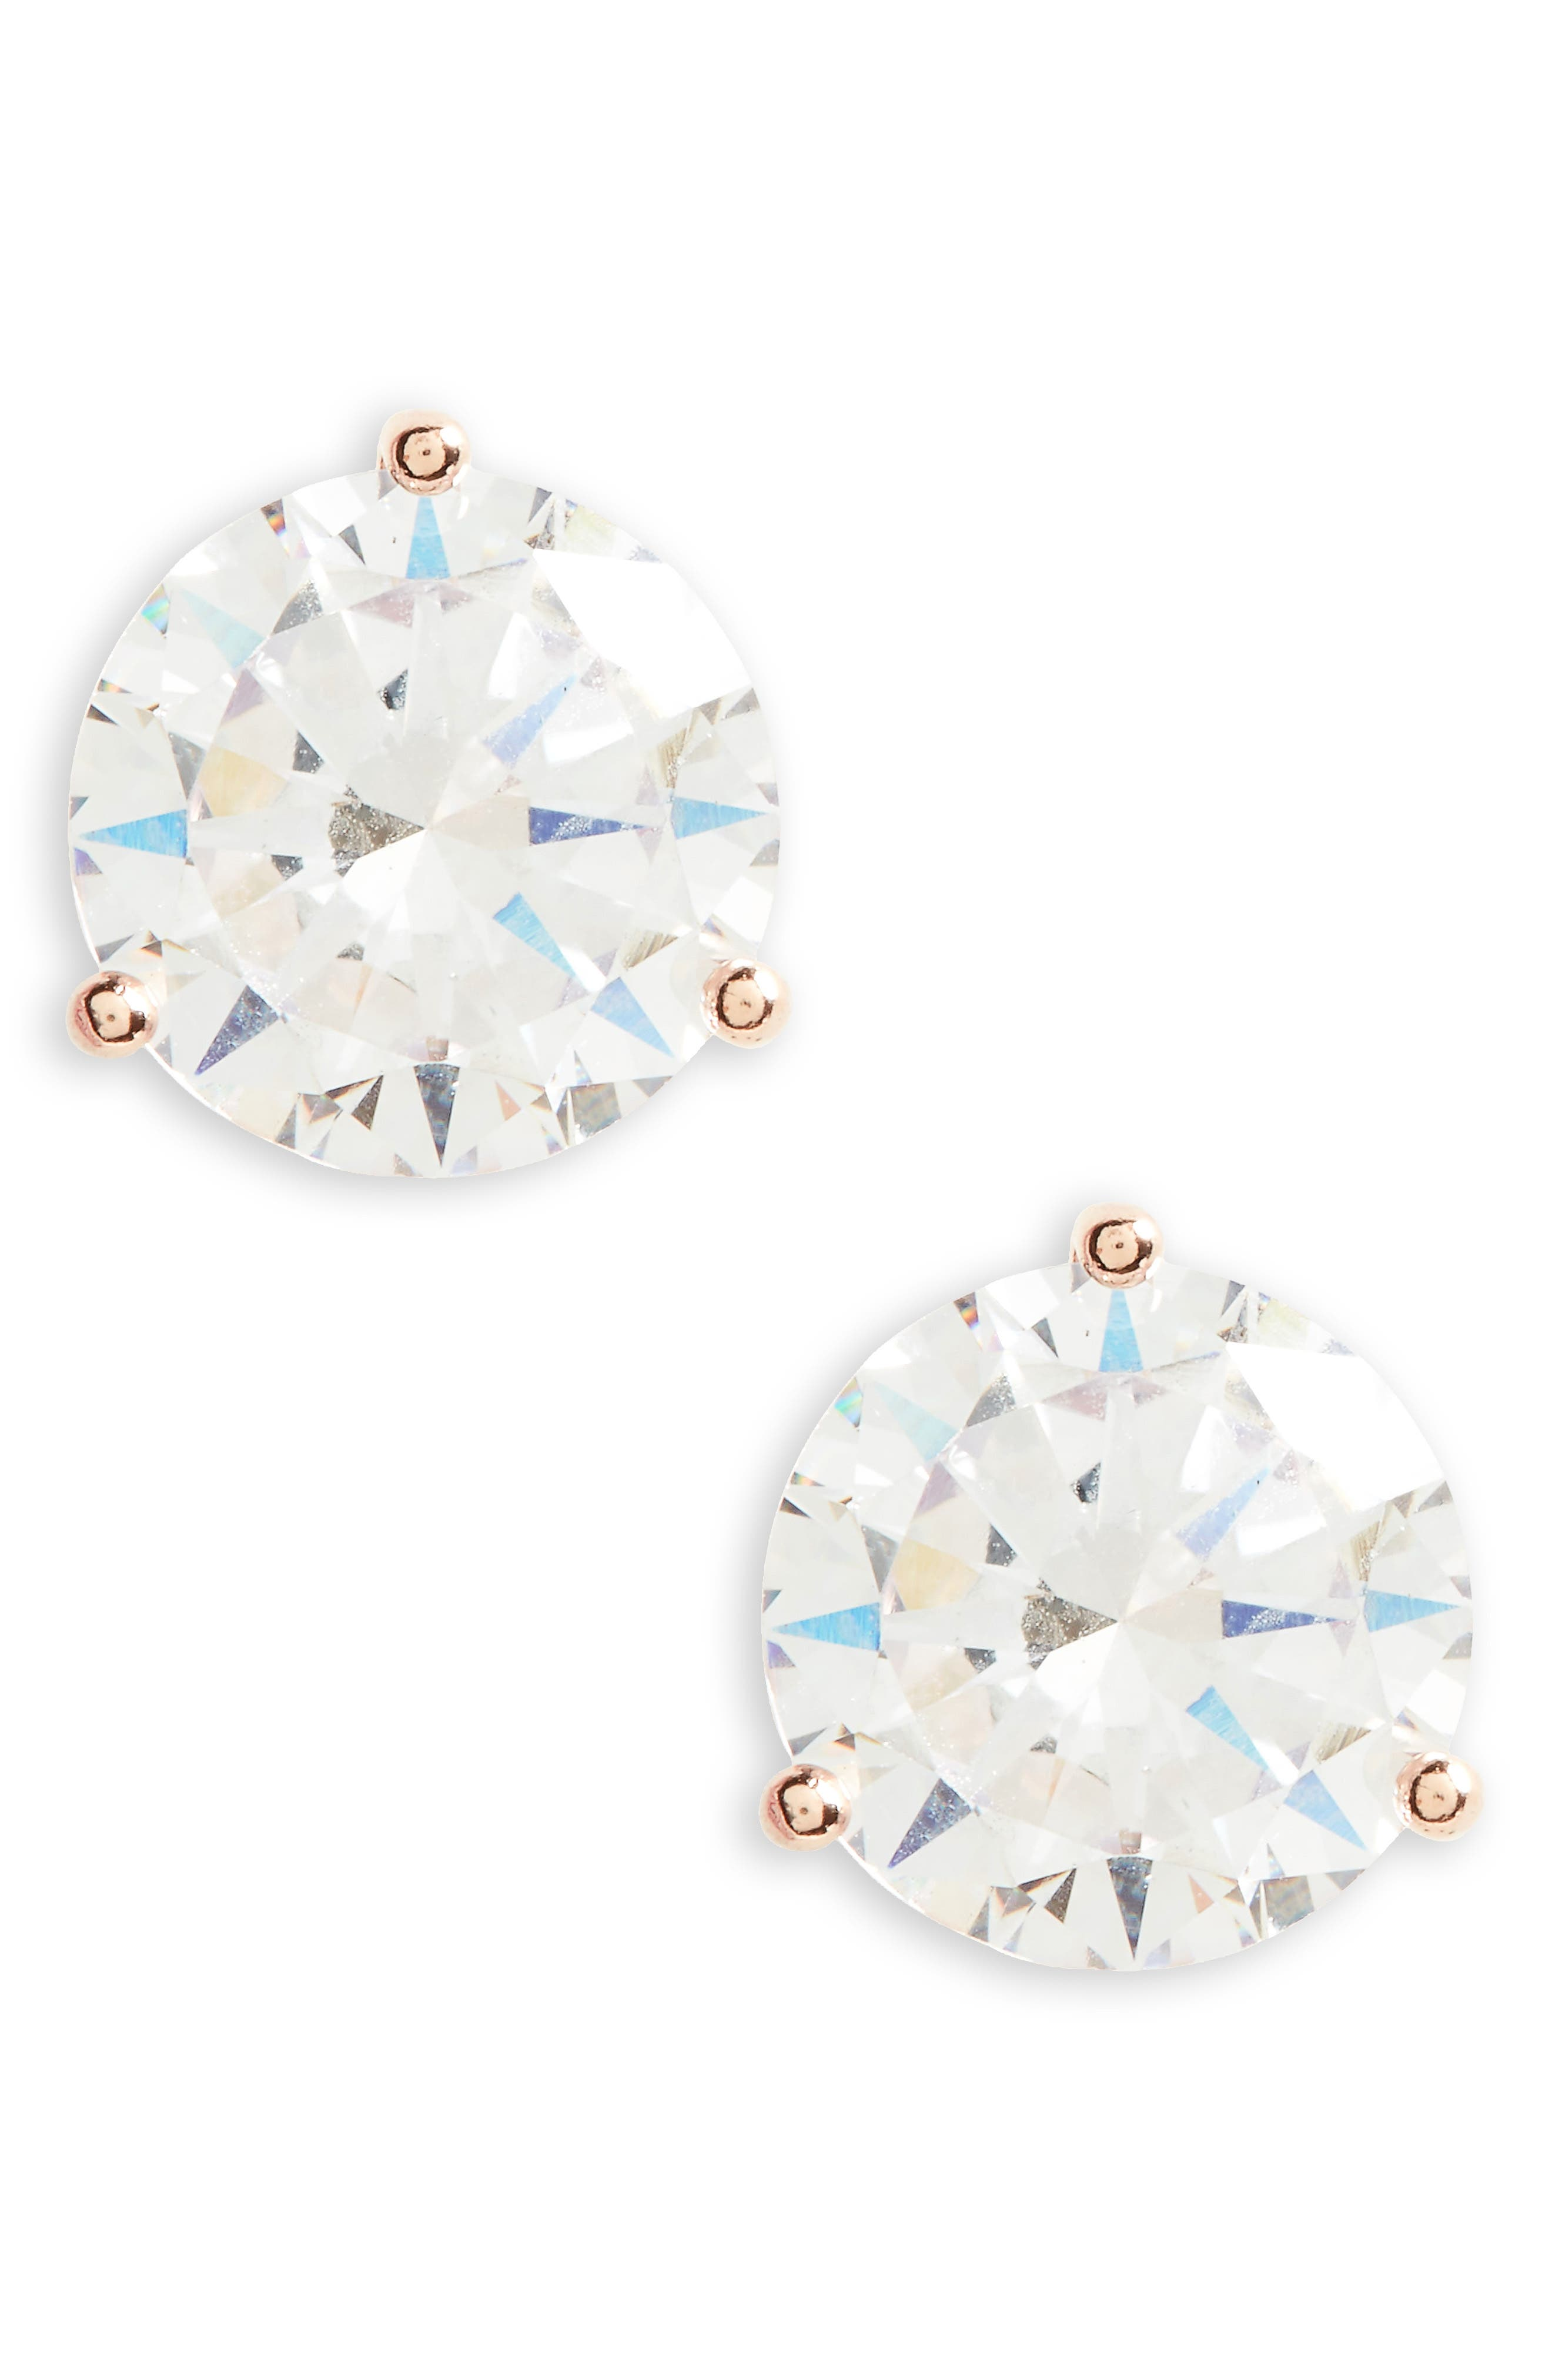 NORDSTROM, 6ct tw Cubic Zirconia Earrings, Main thumbnail 1, color, CLEAR- ROSE GOLD